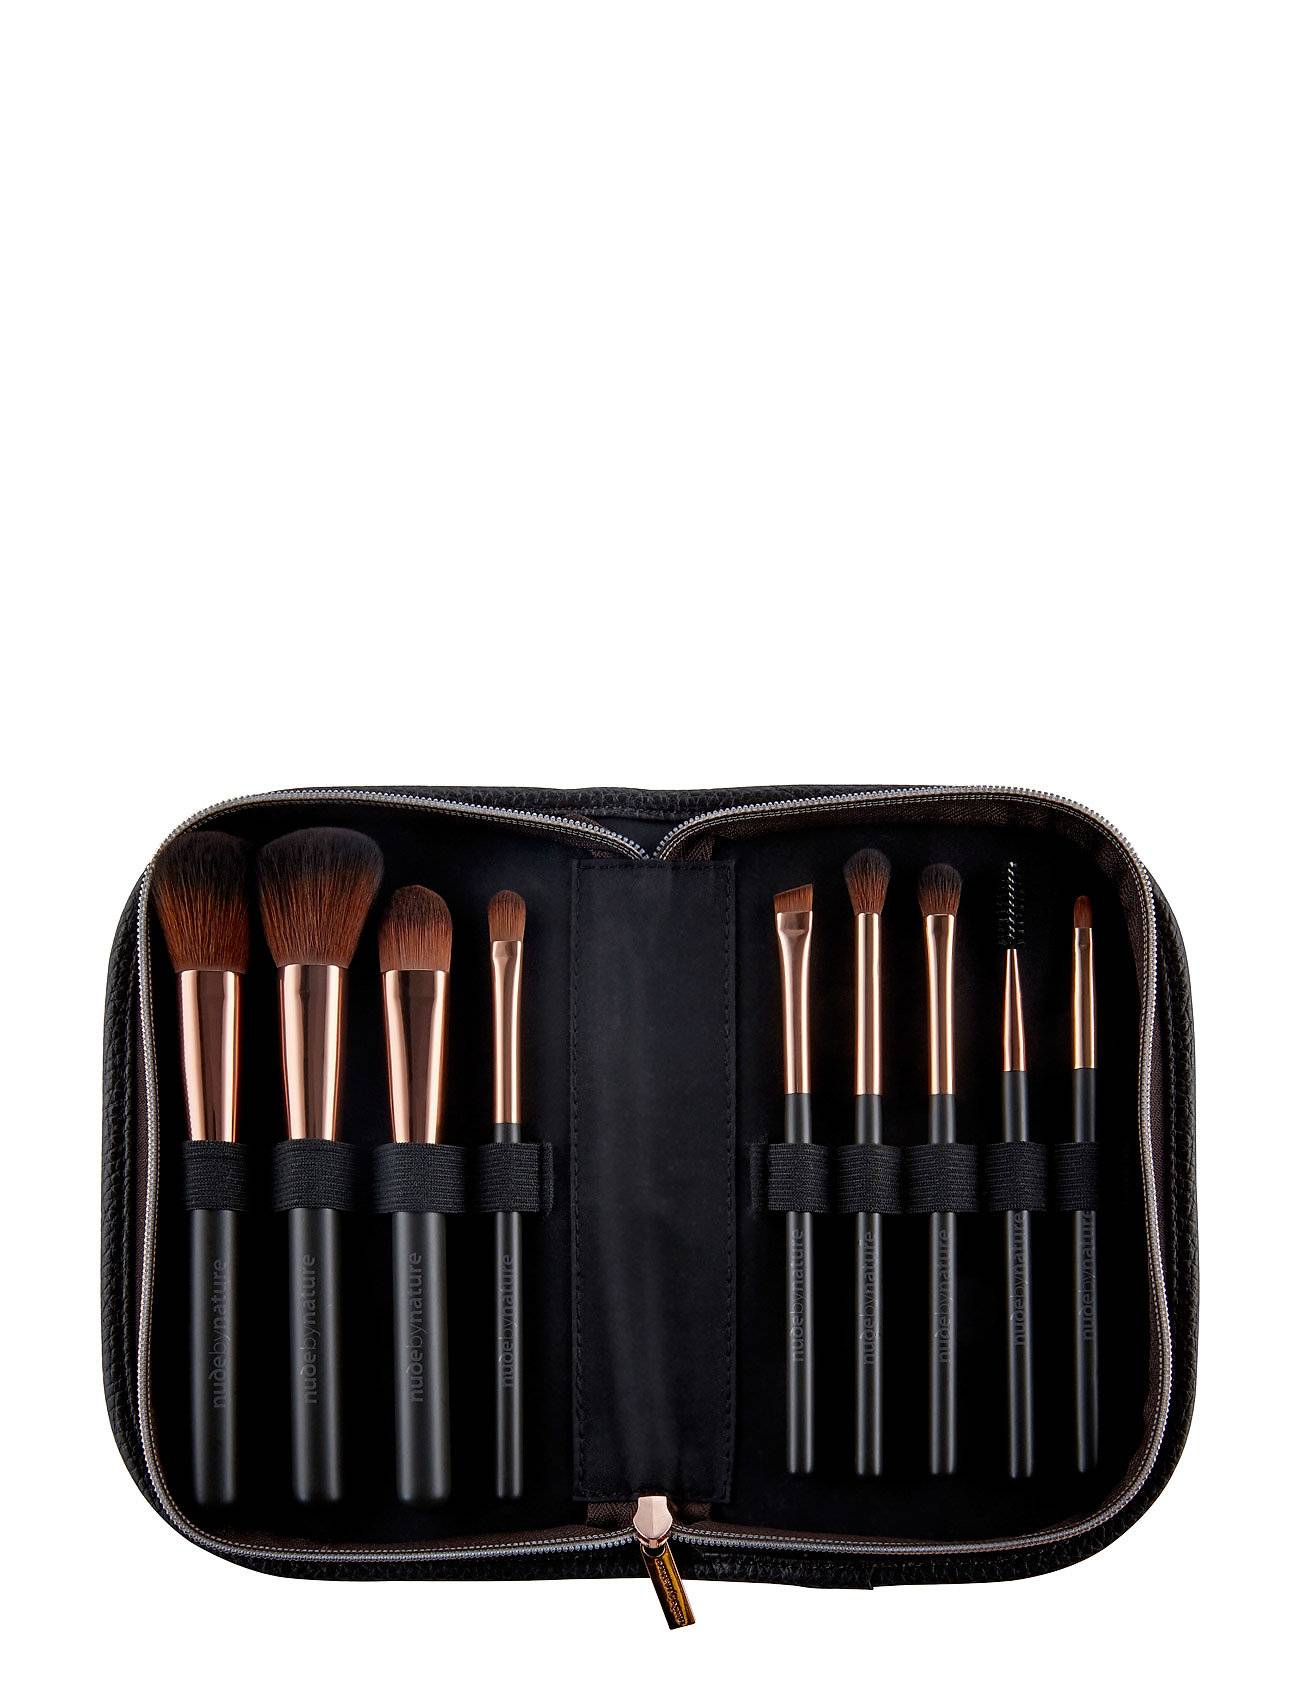 Nude by Nature Brushes Ultimate Coll Prof Brush Set Beauty WOMEN Makeup Makeup Brushes Brush Set Nude Nude By Nature